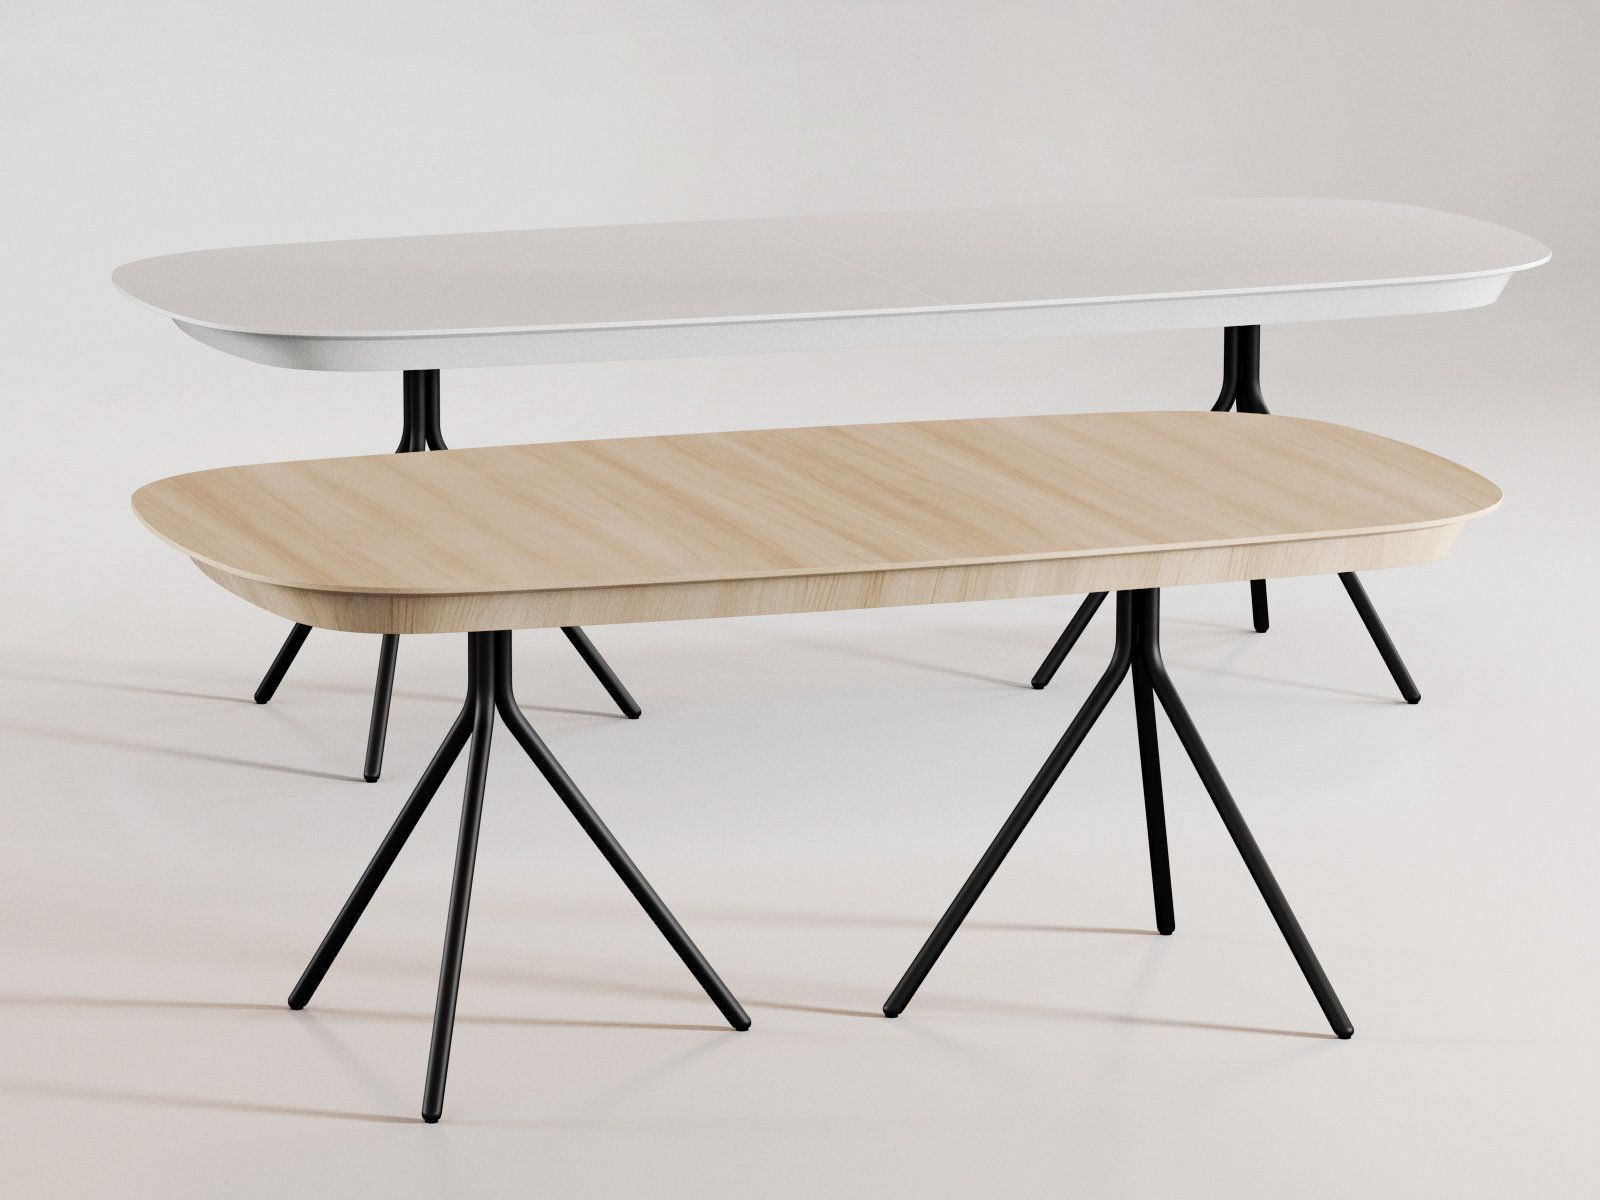 Ottawa Table 3d Model By Design Connected